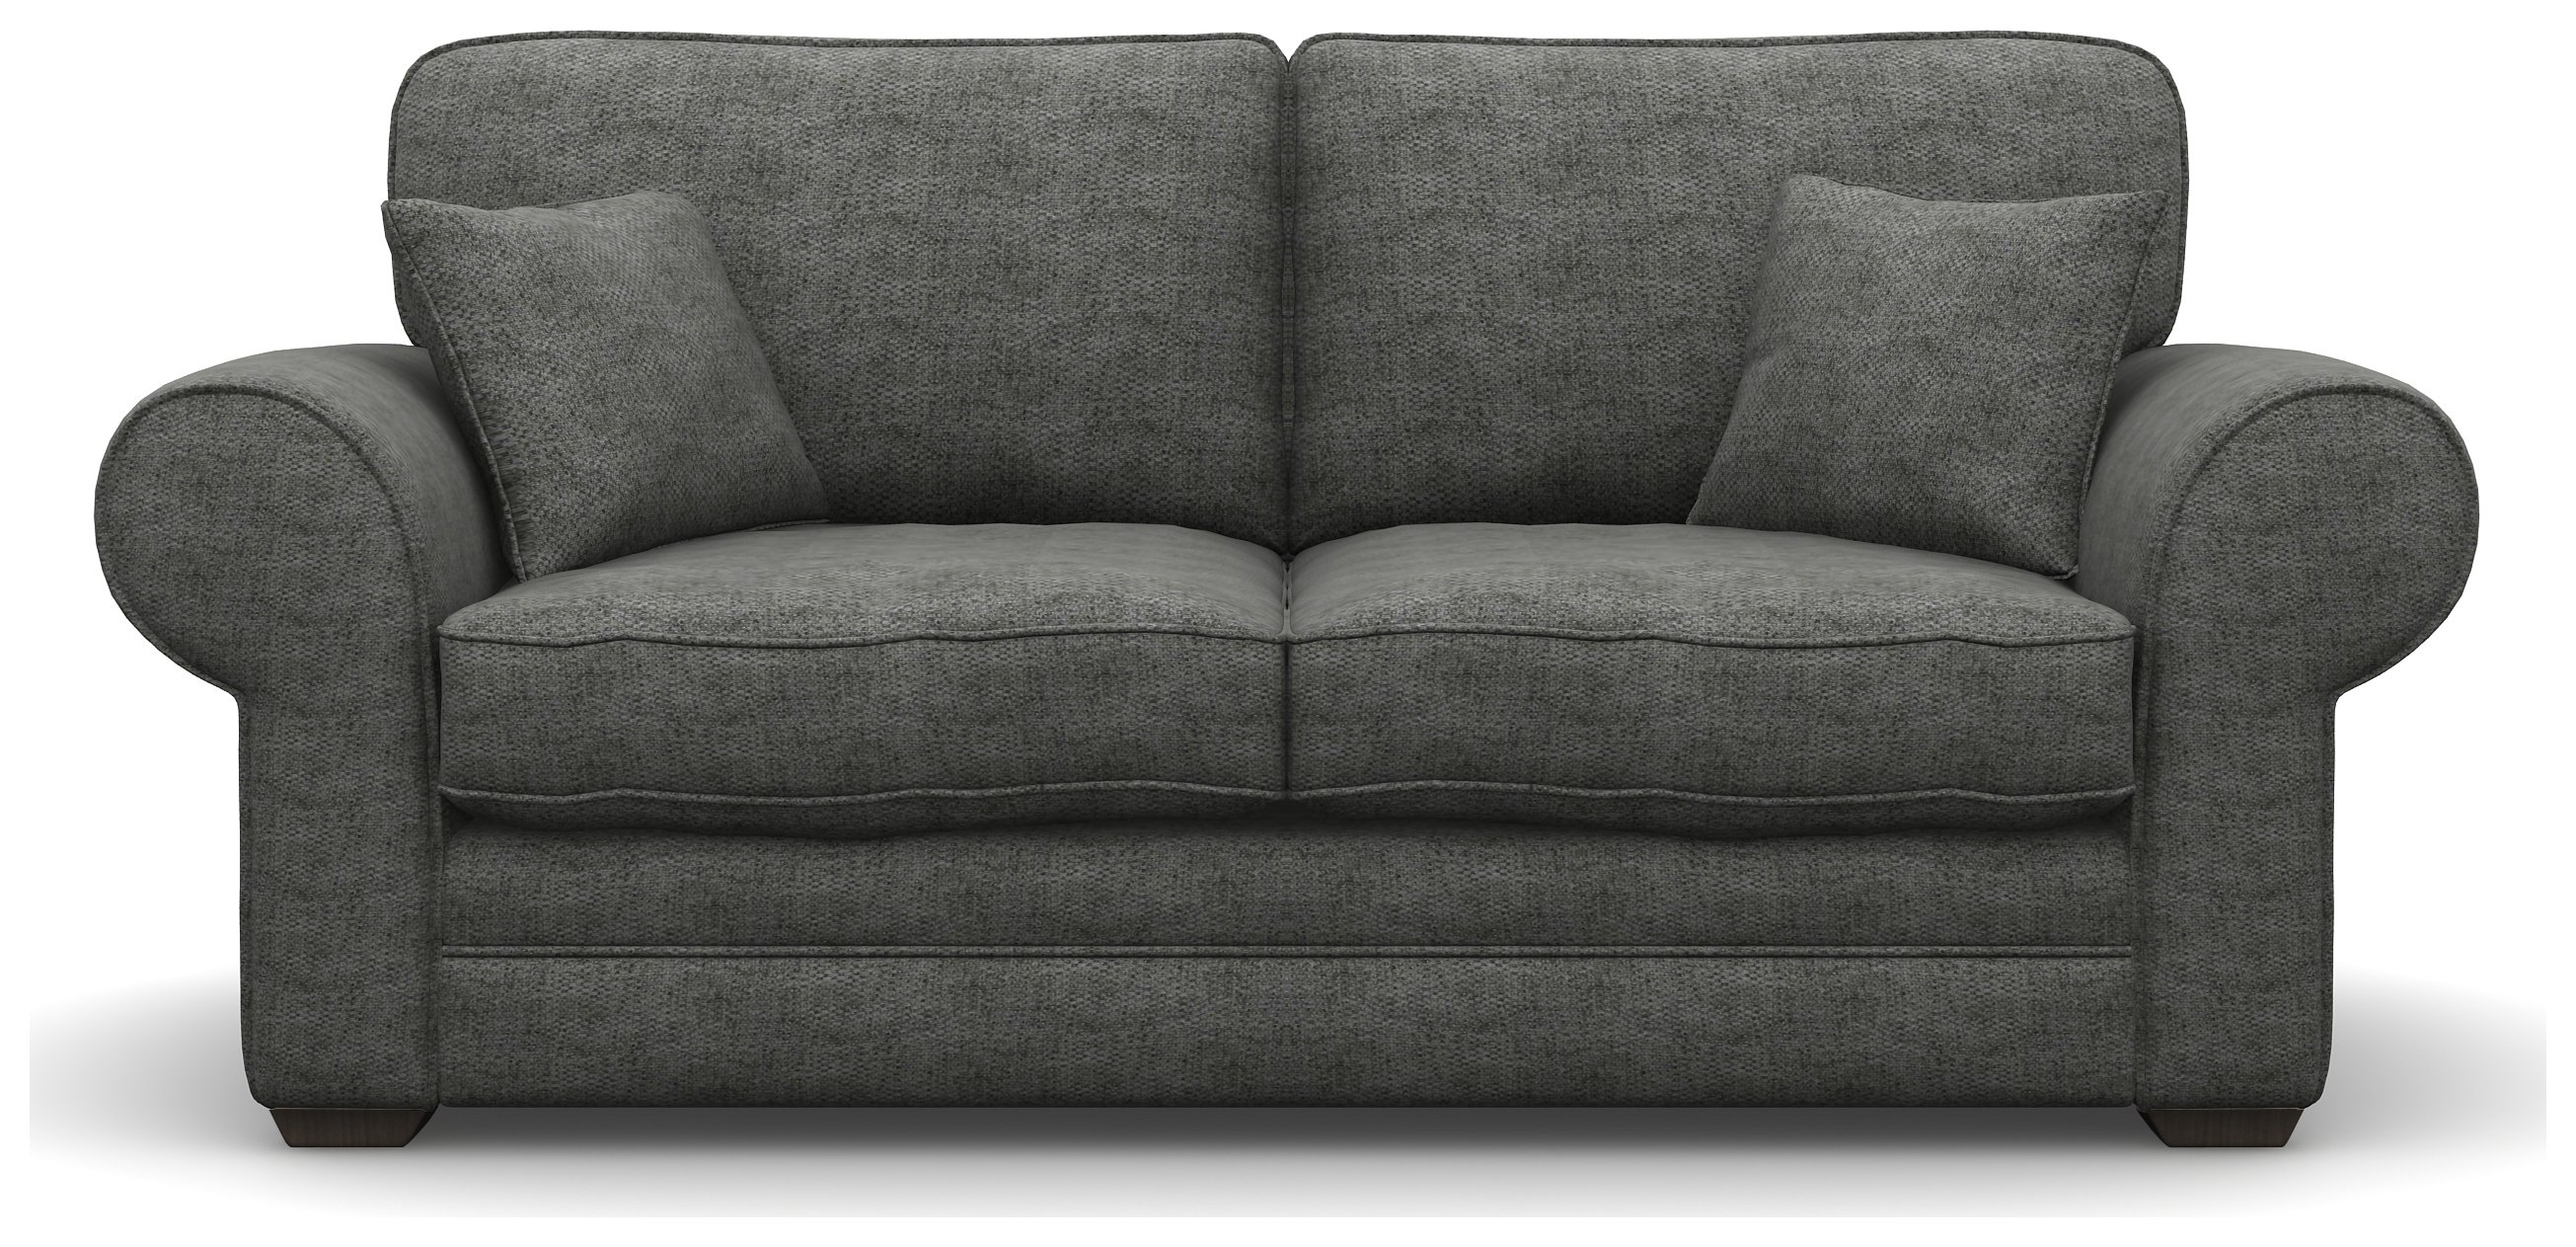 Heart of House Chedworth Small Double Sofa Bed - Grey.